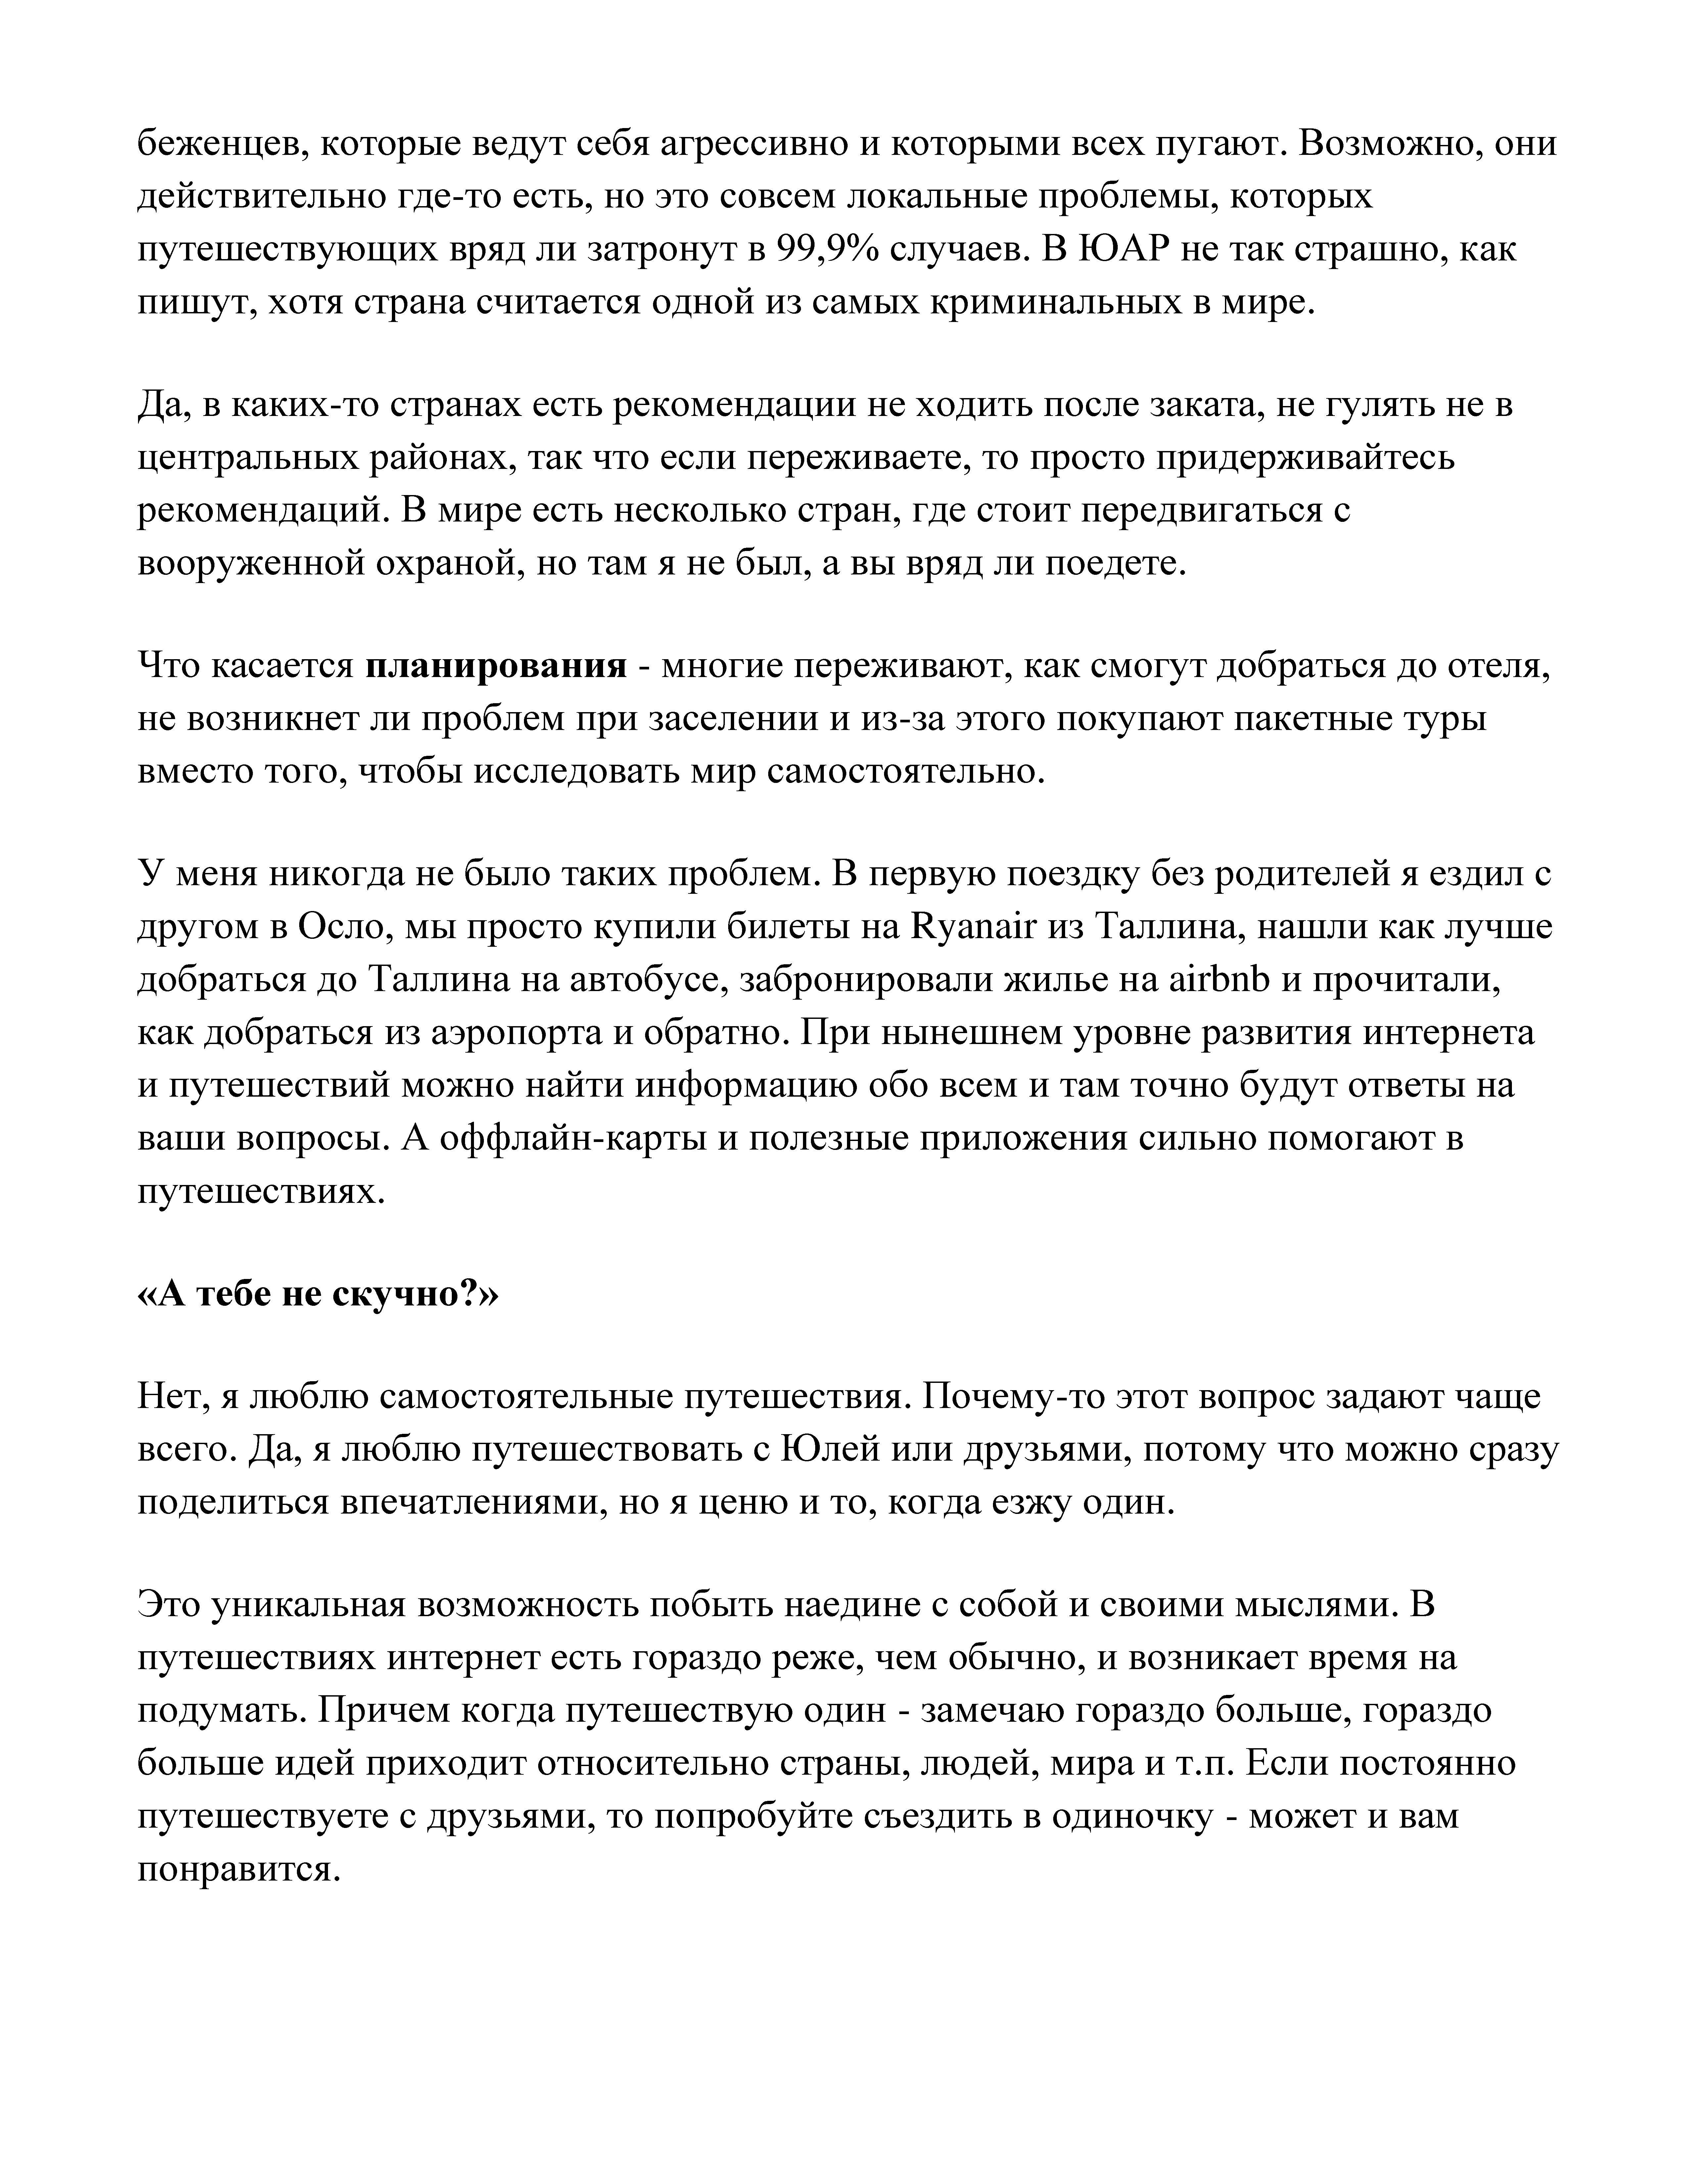 Page_00002 РУС.jpg